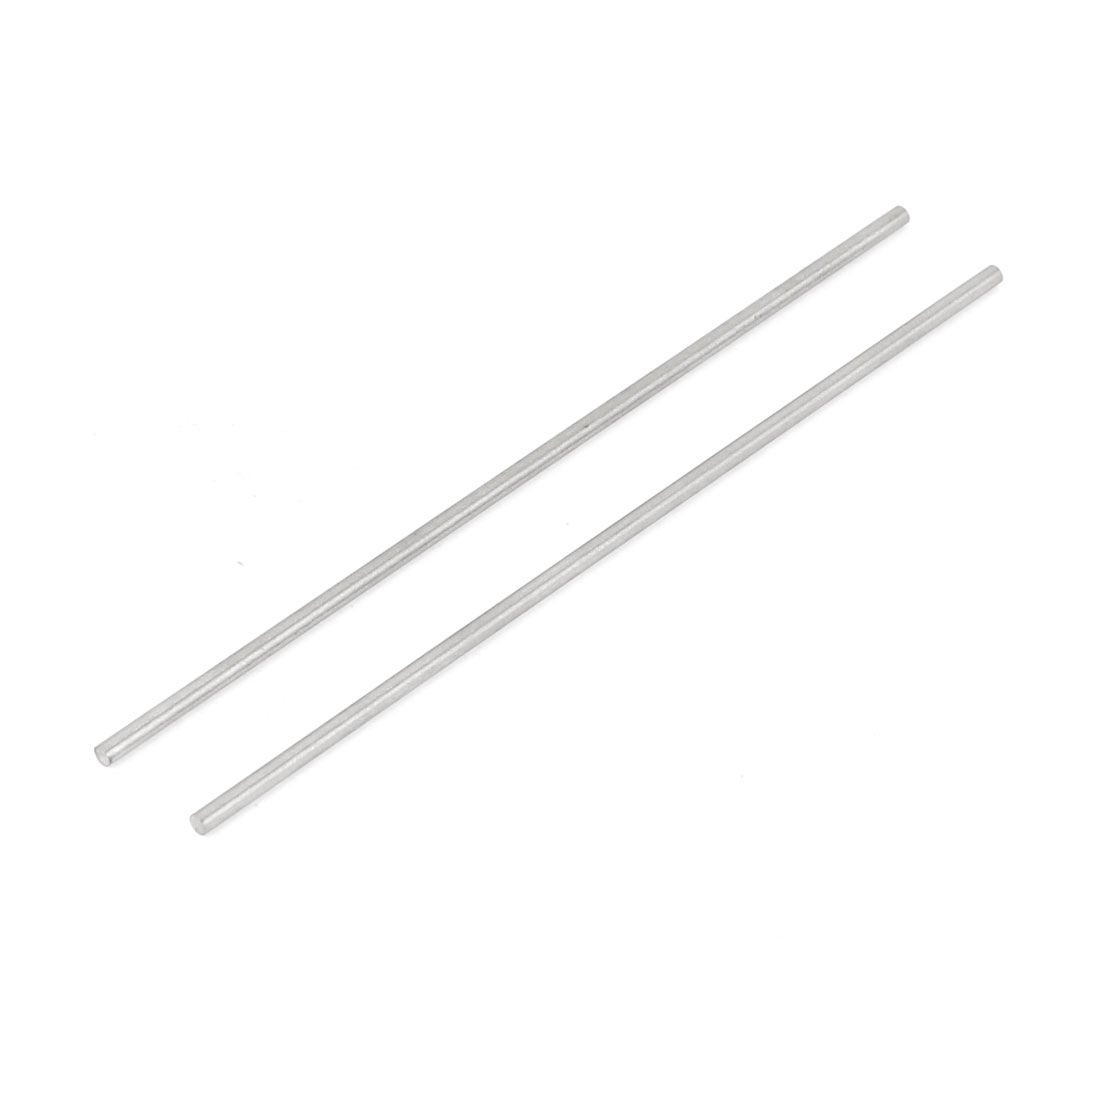 2 Pcs HSS High Speed Steel Round Turning Lathe Bars 2mm x 100mm